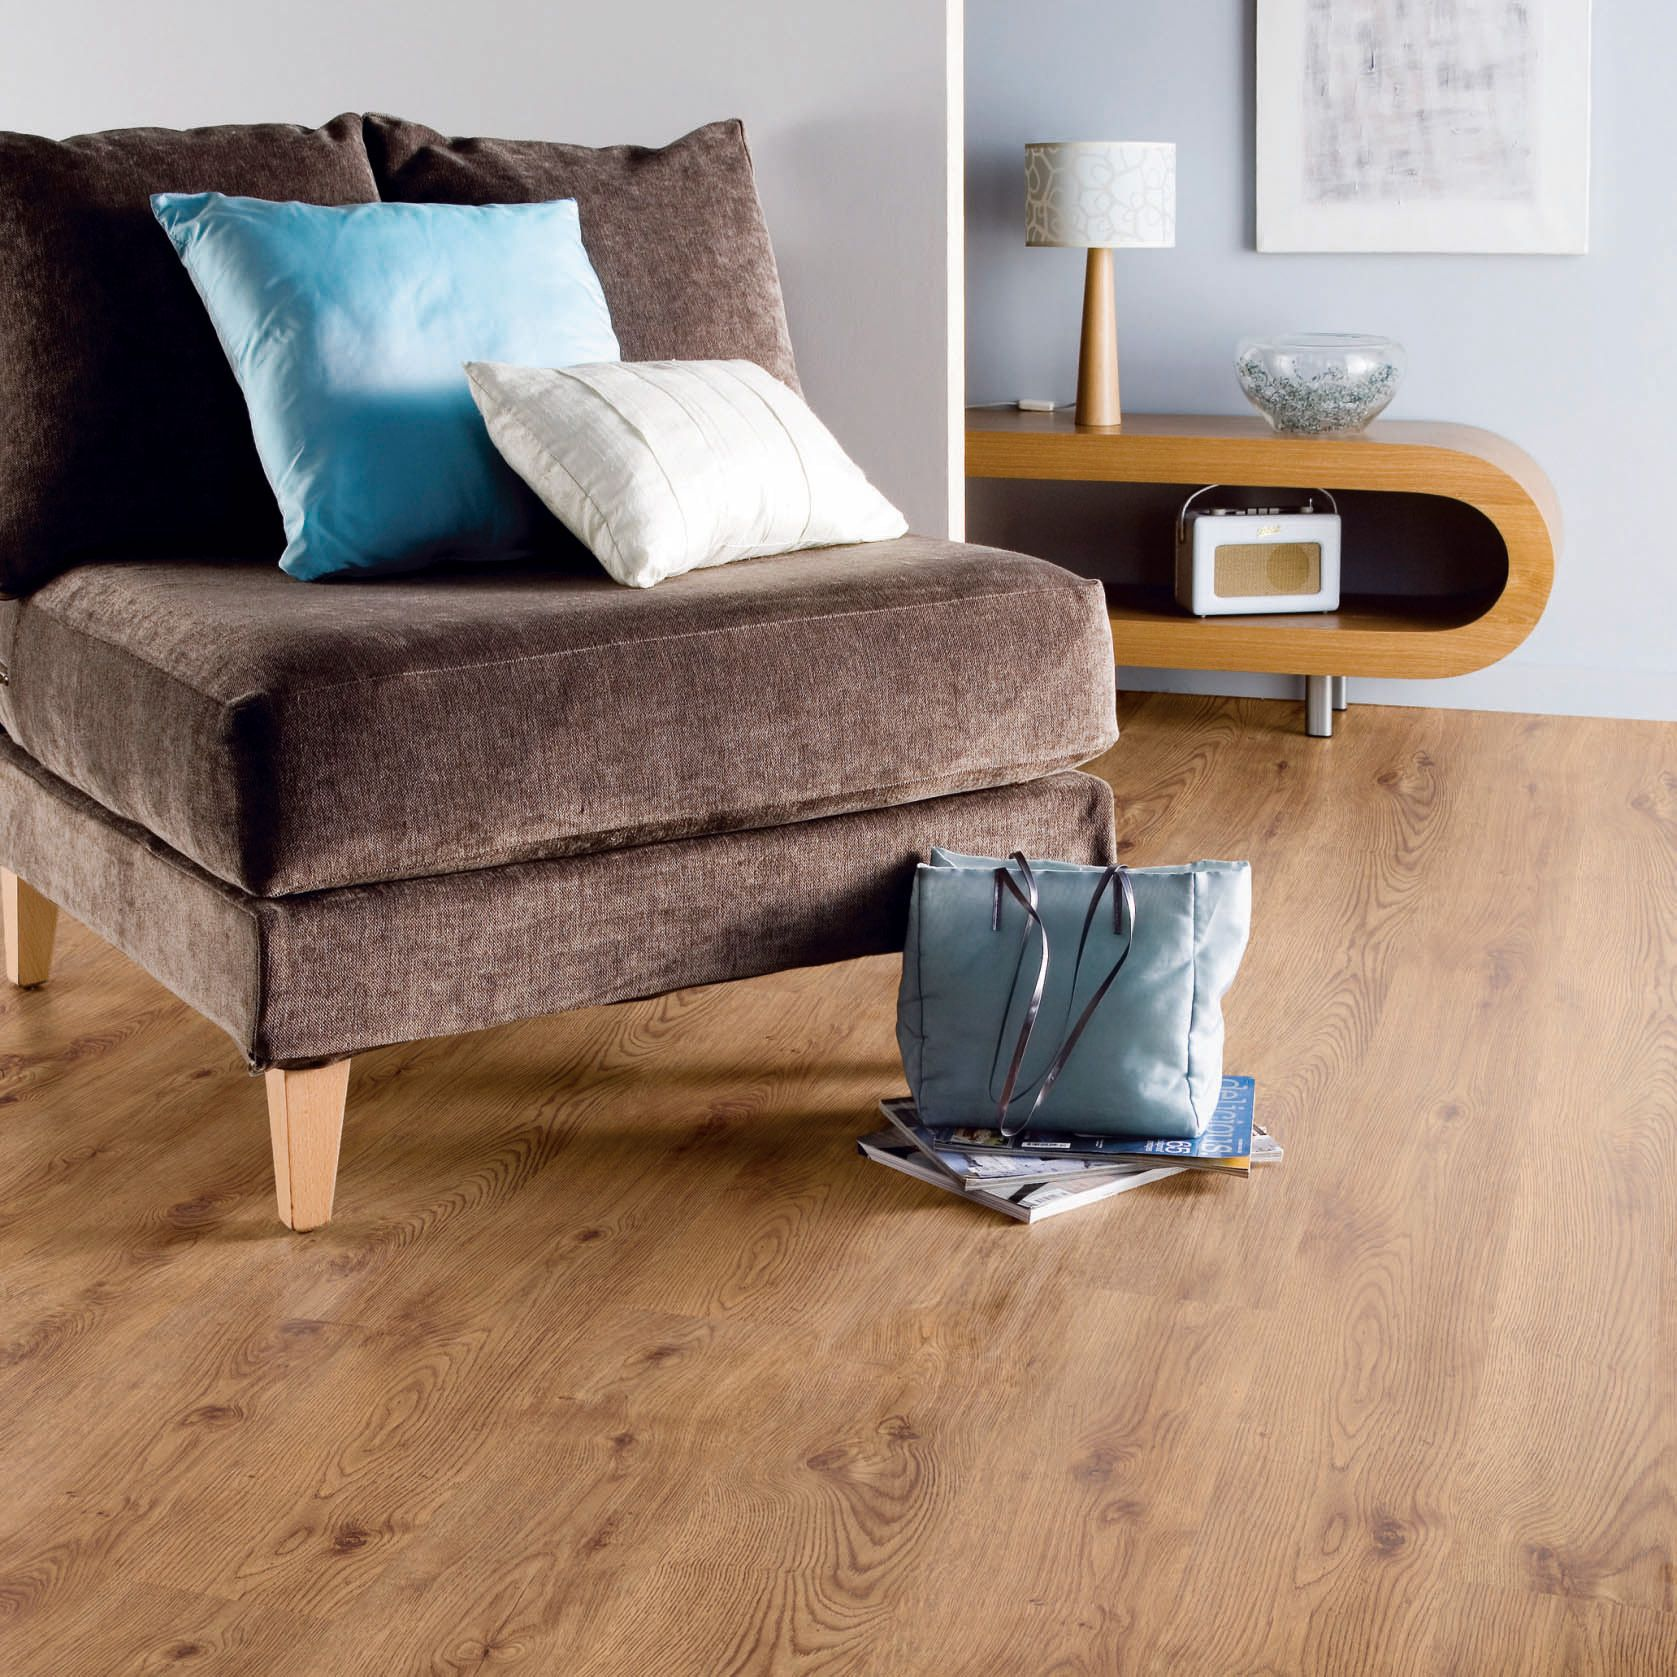 Natural Oak Plank Effect Laminate Flooring 2 5 M² Pack Departments Diy At B Q